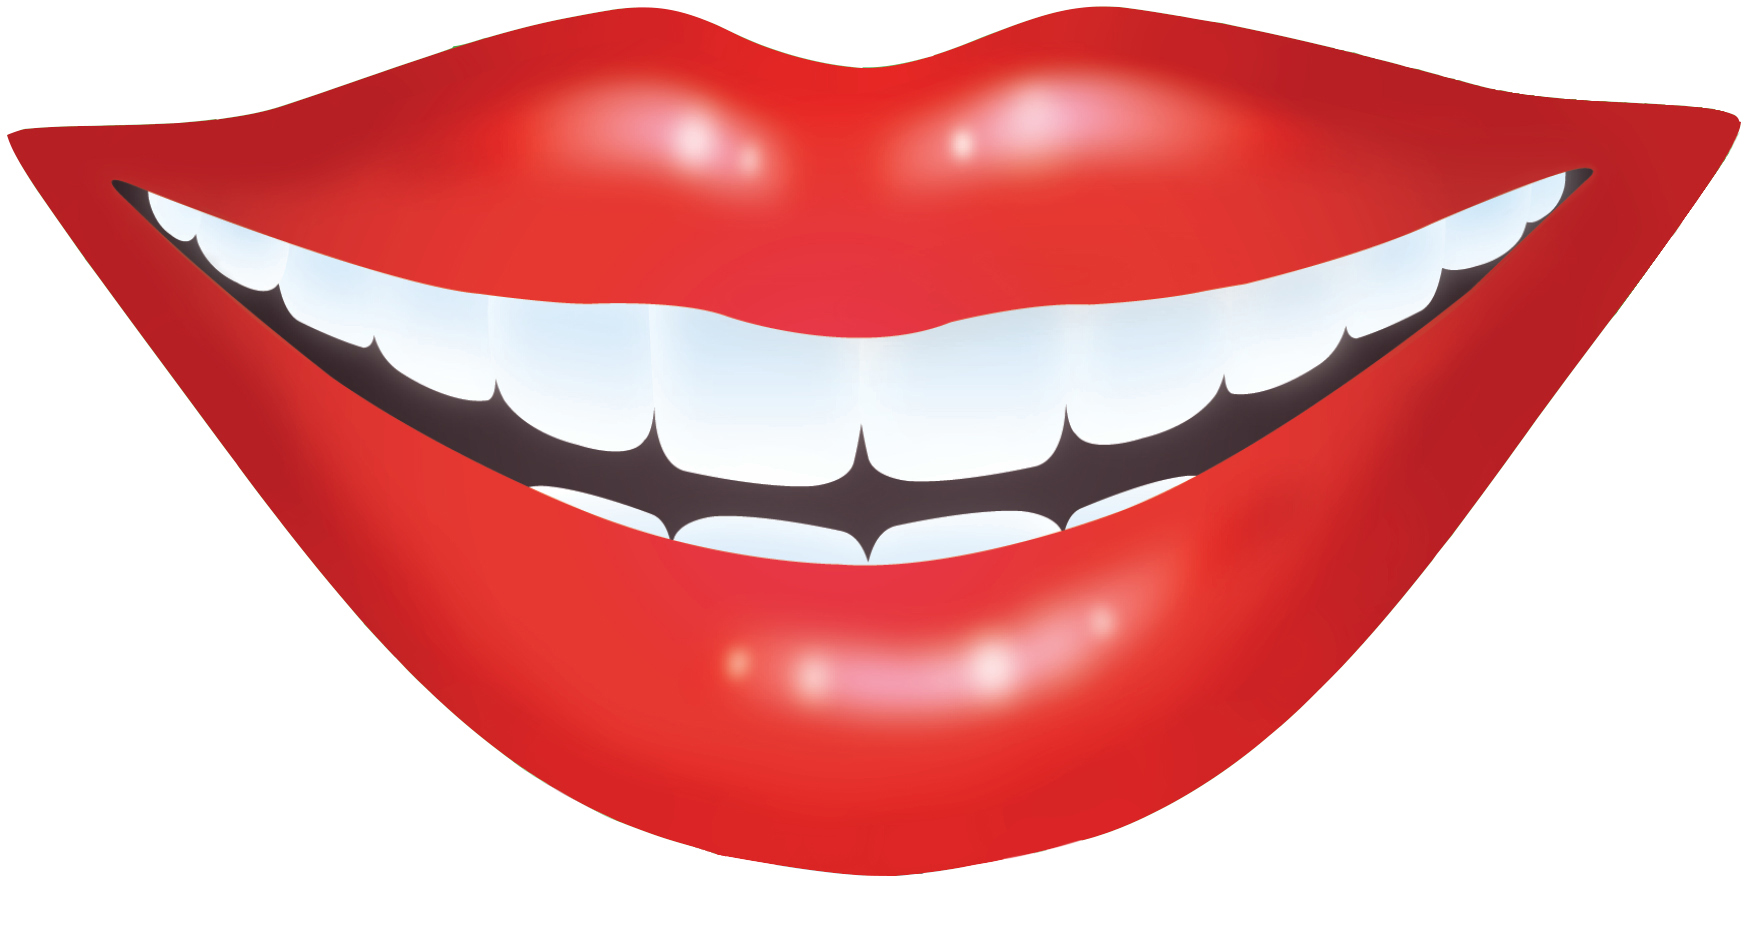 Lips clipart cute Clipart Free Smiling Cliparts Cute